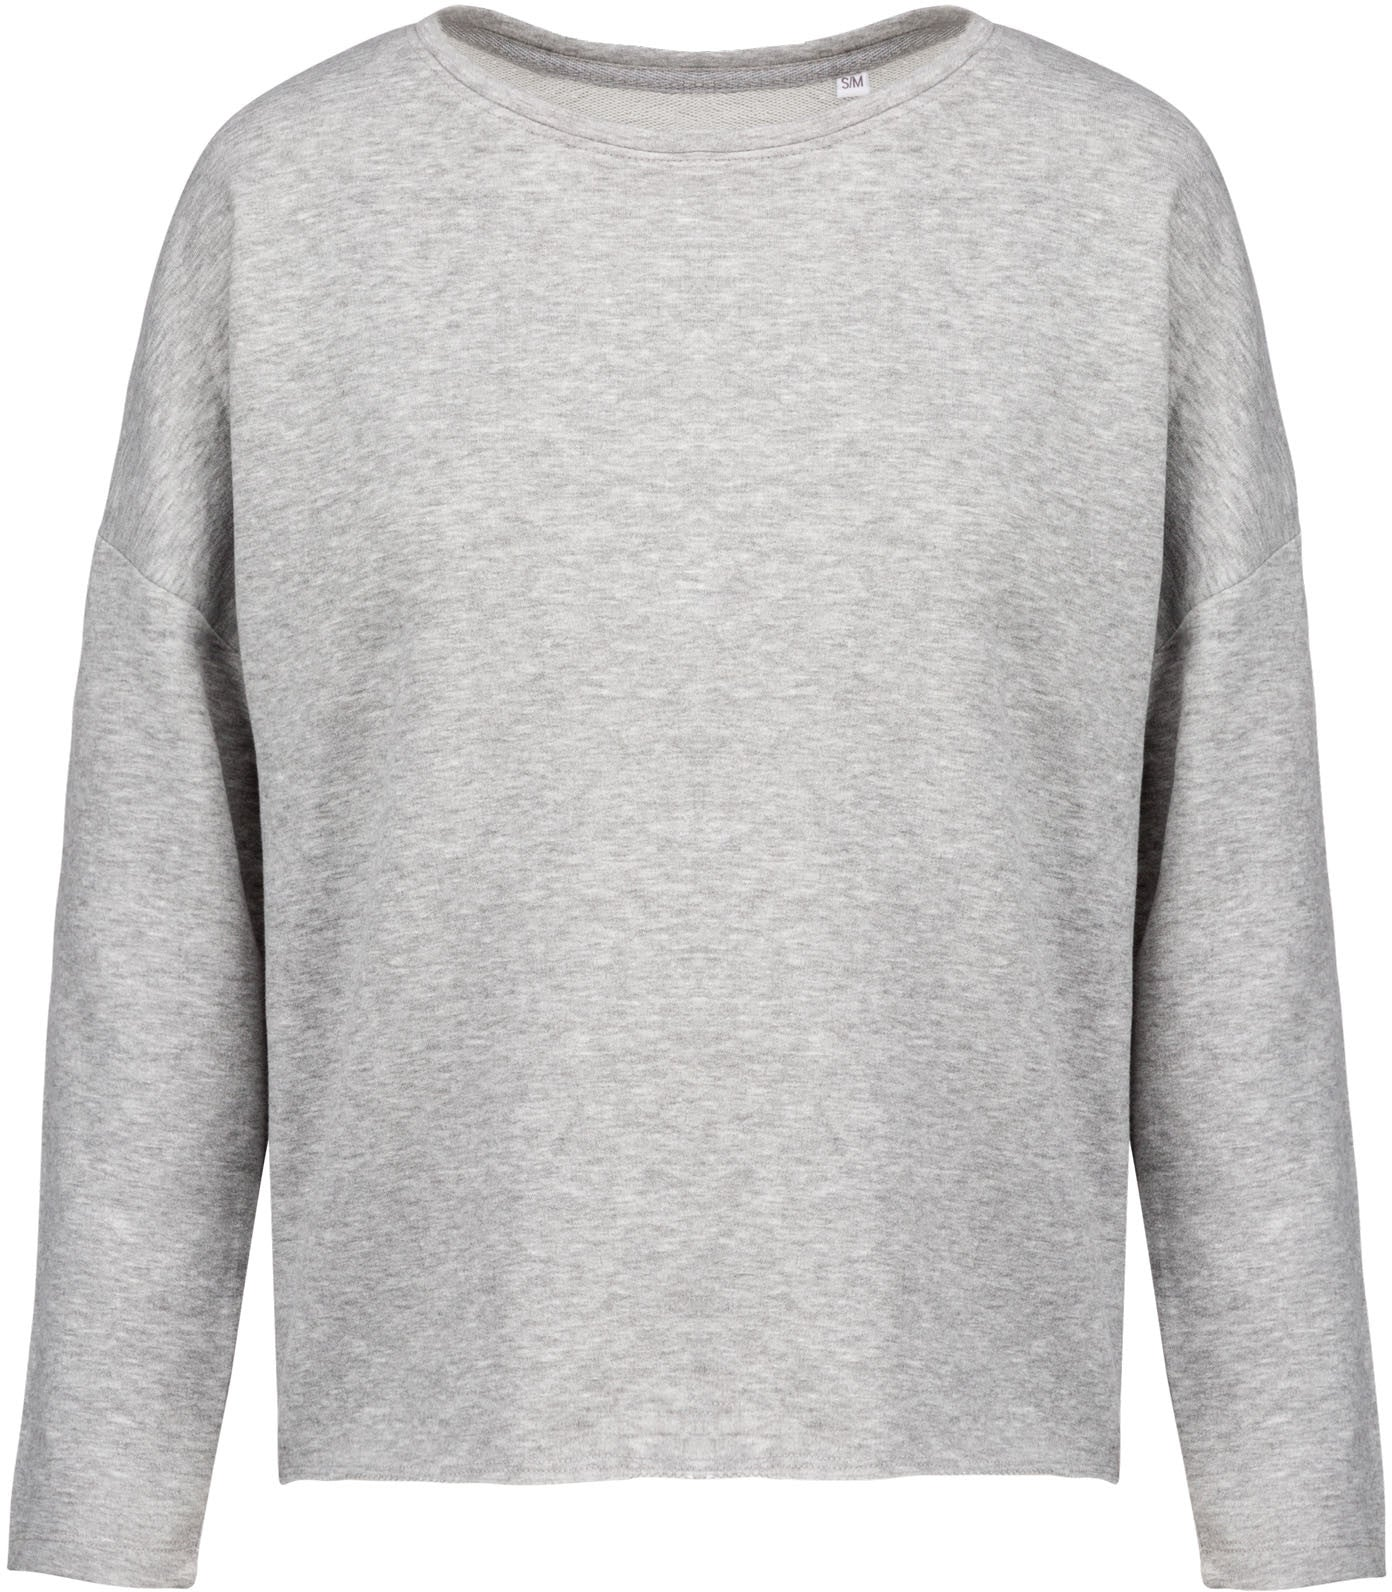 Chillax Sweater - Grey